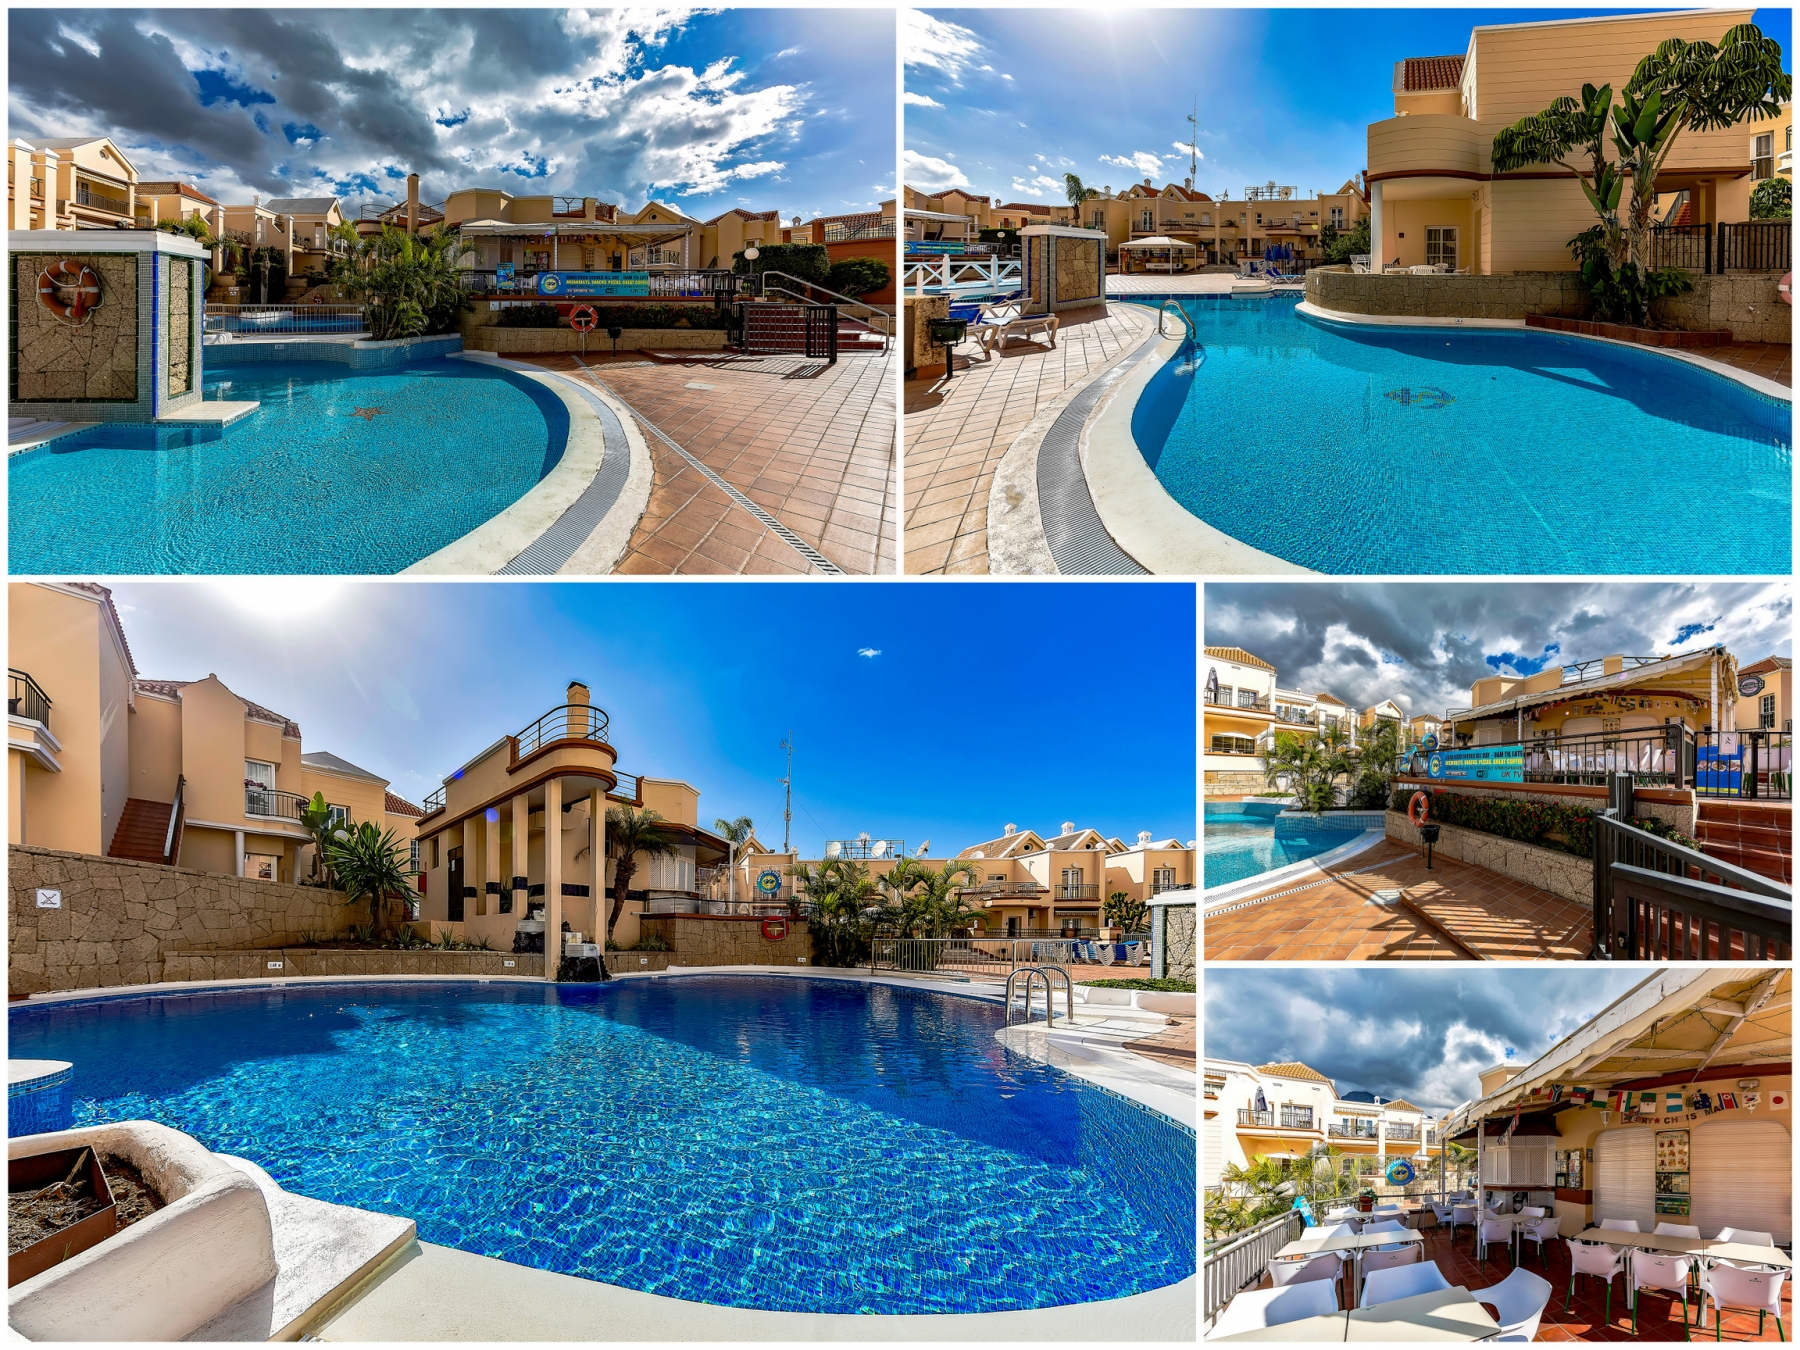 Properties for Sale in Tenerife, Canary Islands, Spain | SylkWayStar Real Estate. 1 bedroom apartment Yucca Park. Image-22564